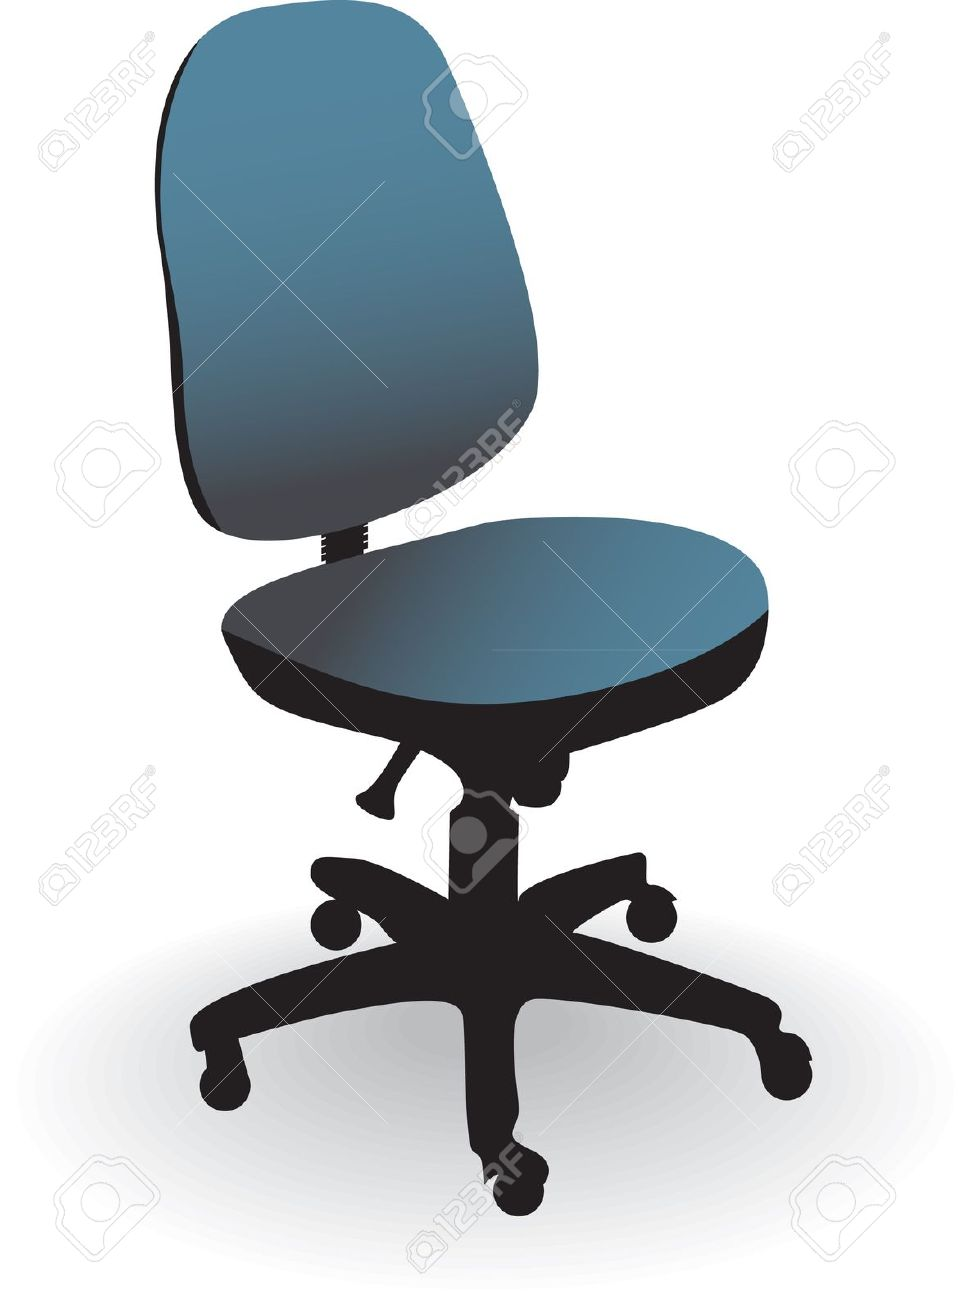 Office clipart office chair Office Clip org Full Digital